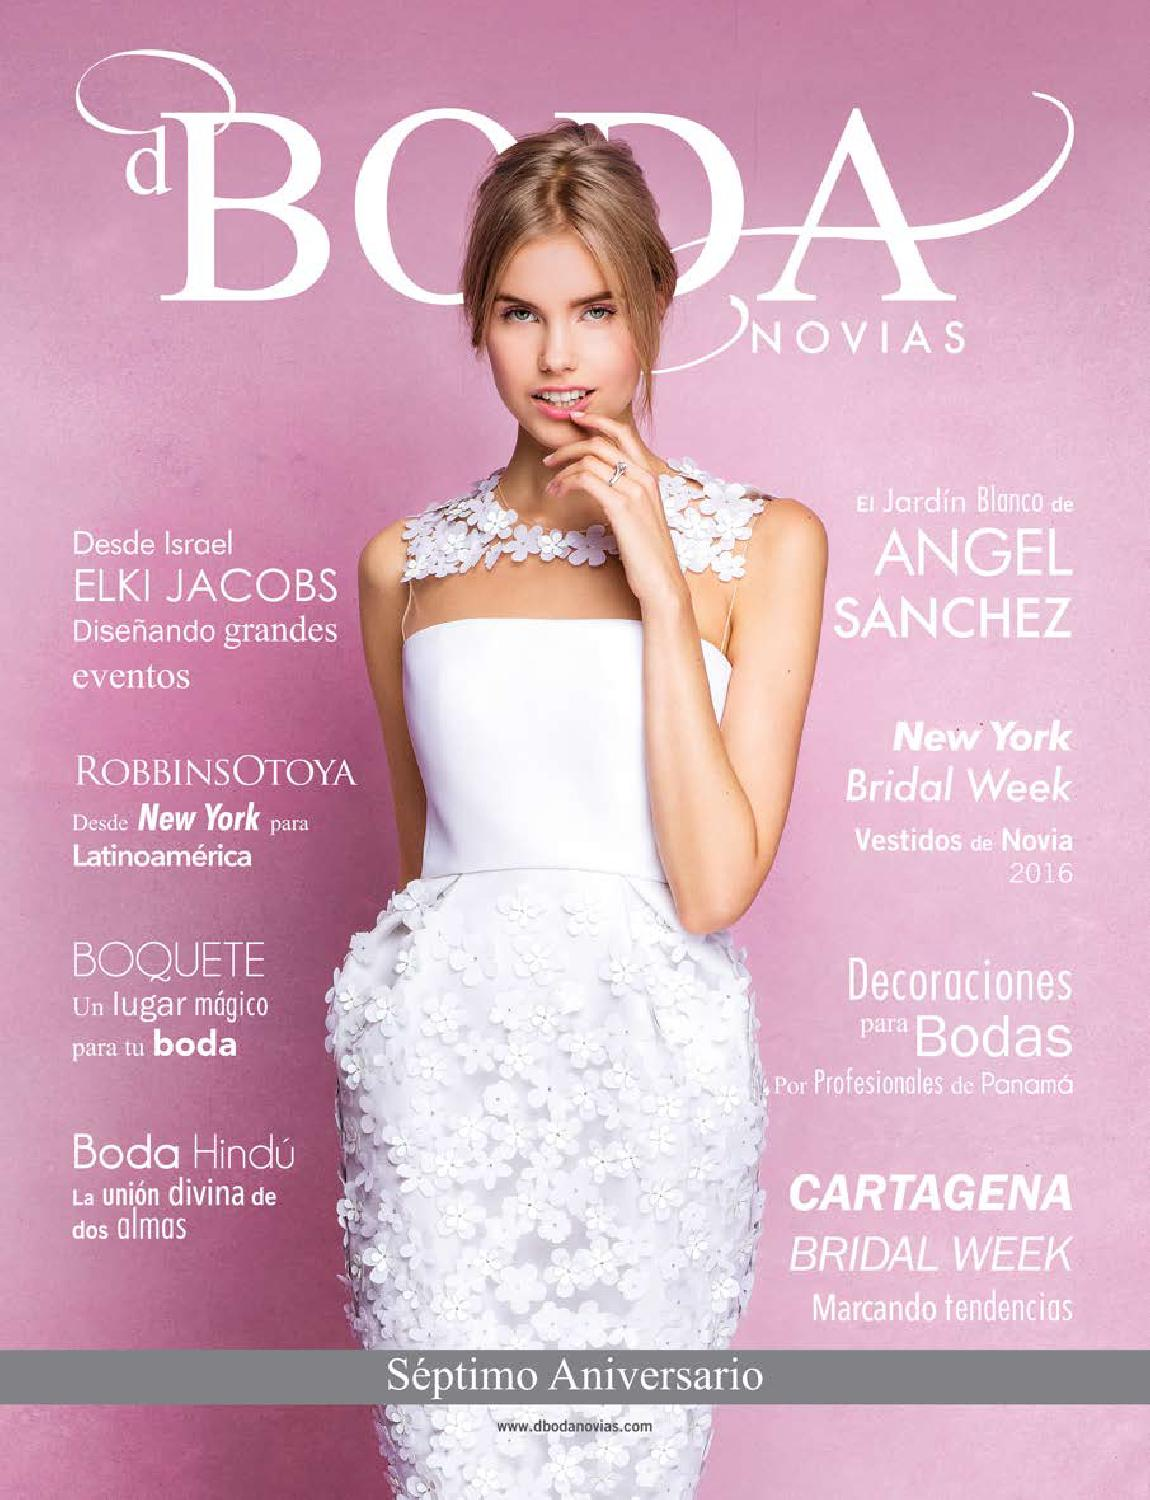 dBODA Novias_Edicion Mar-May2016 by dBODA Novias - issuu